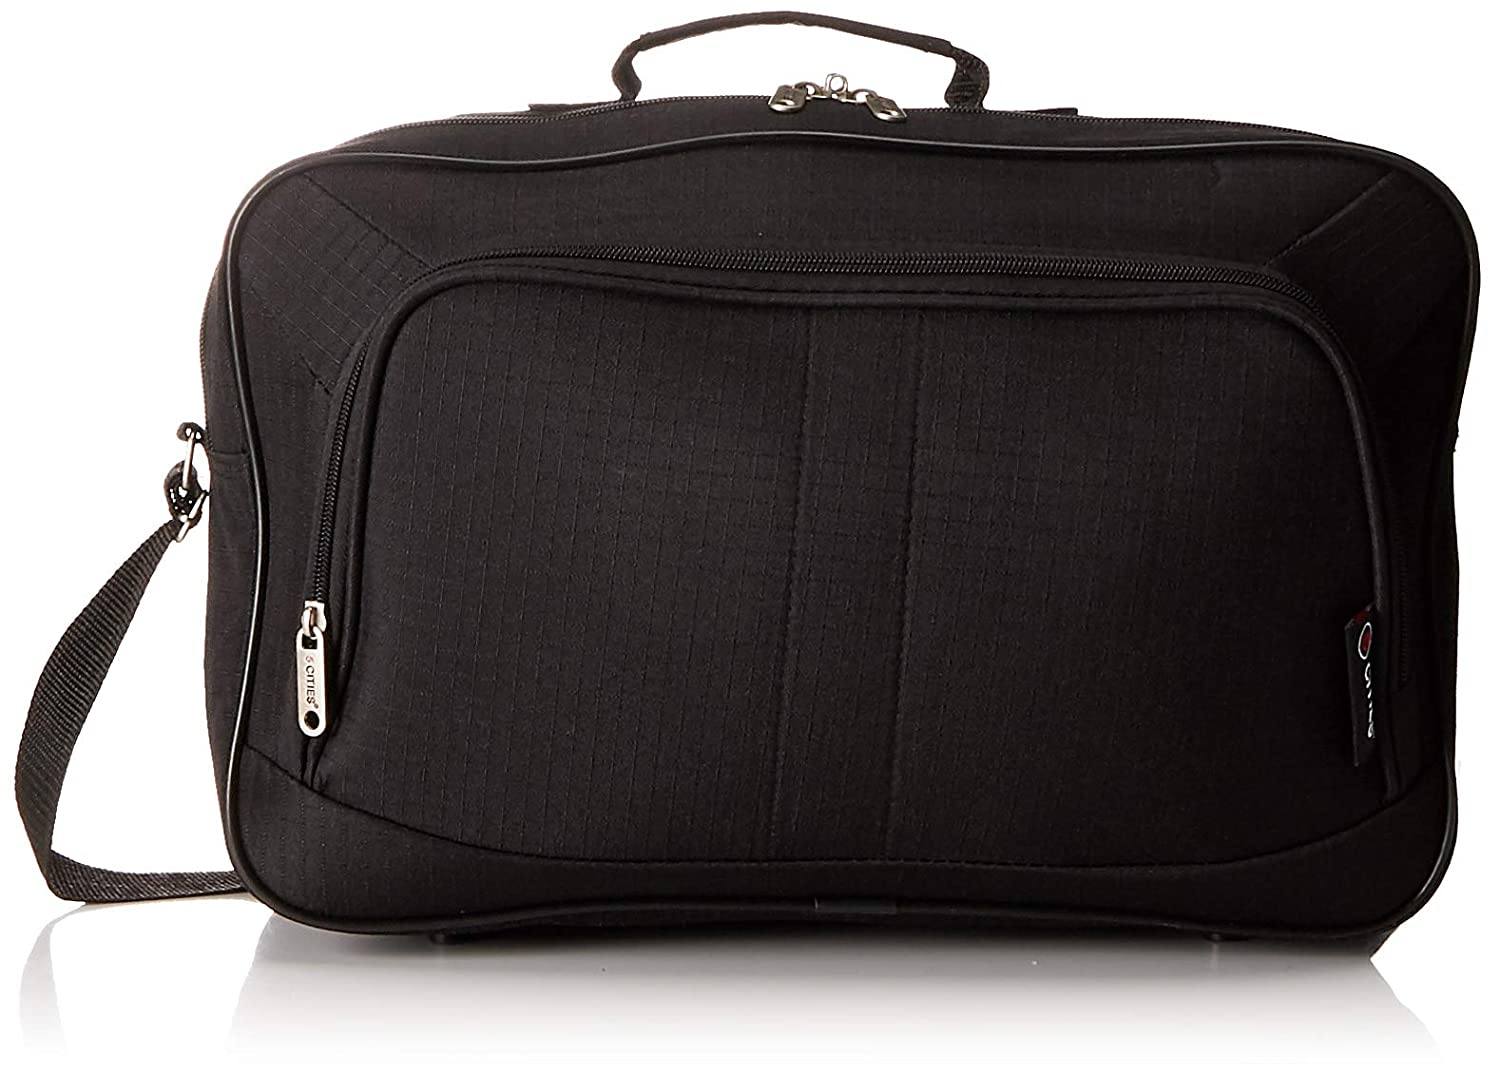 5 Cities Bagage cabine, Black 602 (Noir) - FB602 BLACK